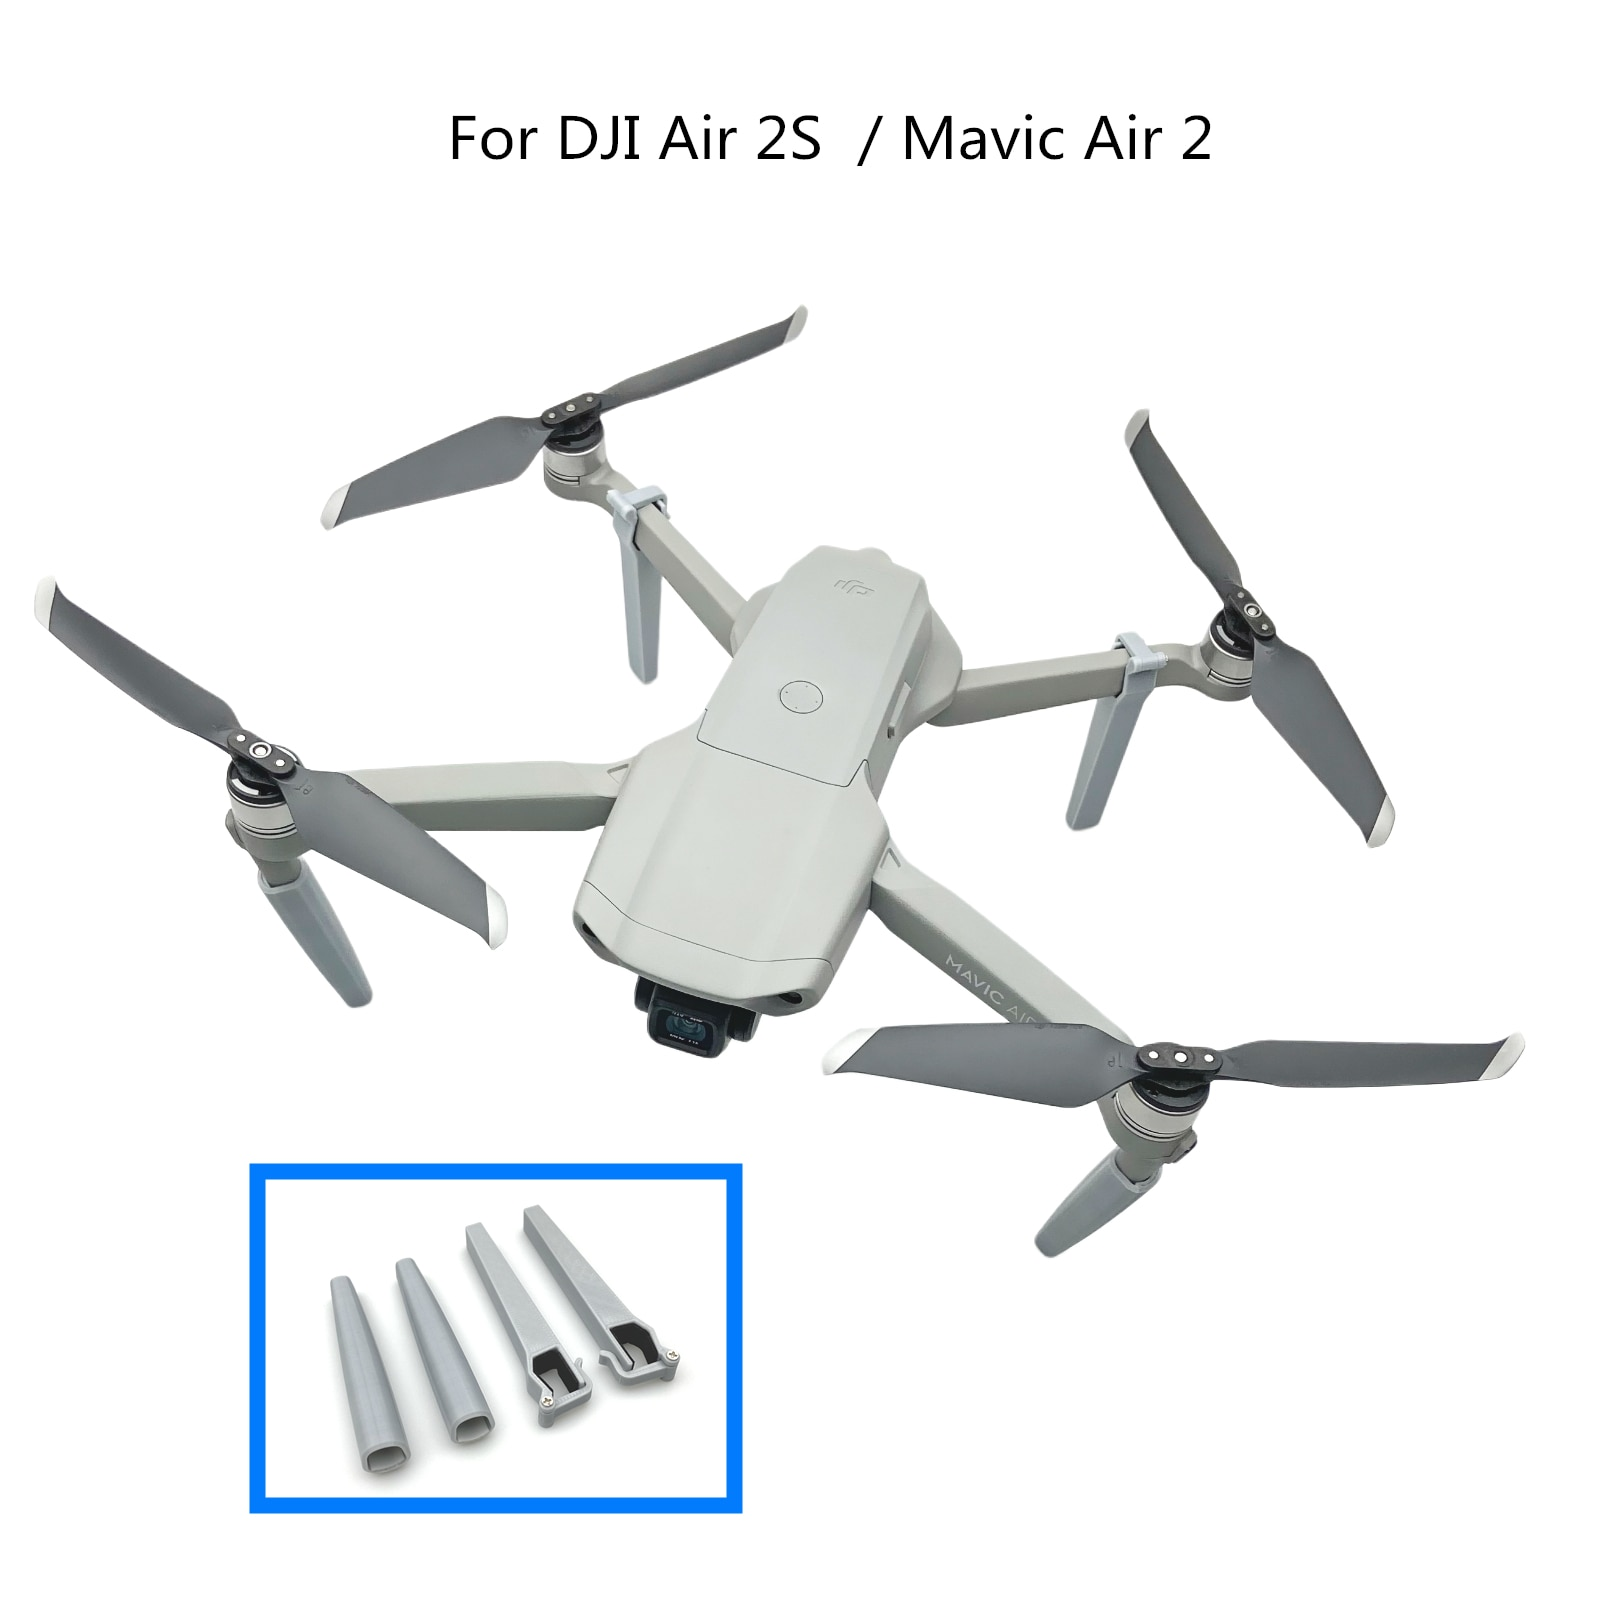 Landing Gears Heightened Extension Support Landing Legs Bracket For DJI Air 2S  / Mavic Air 2  Drone